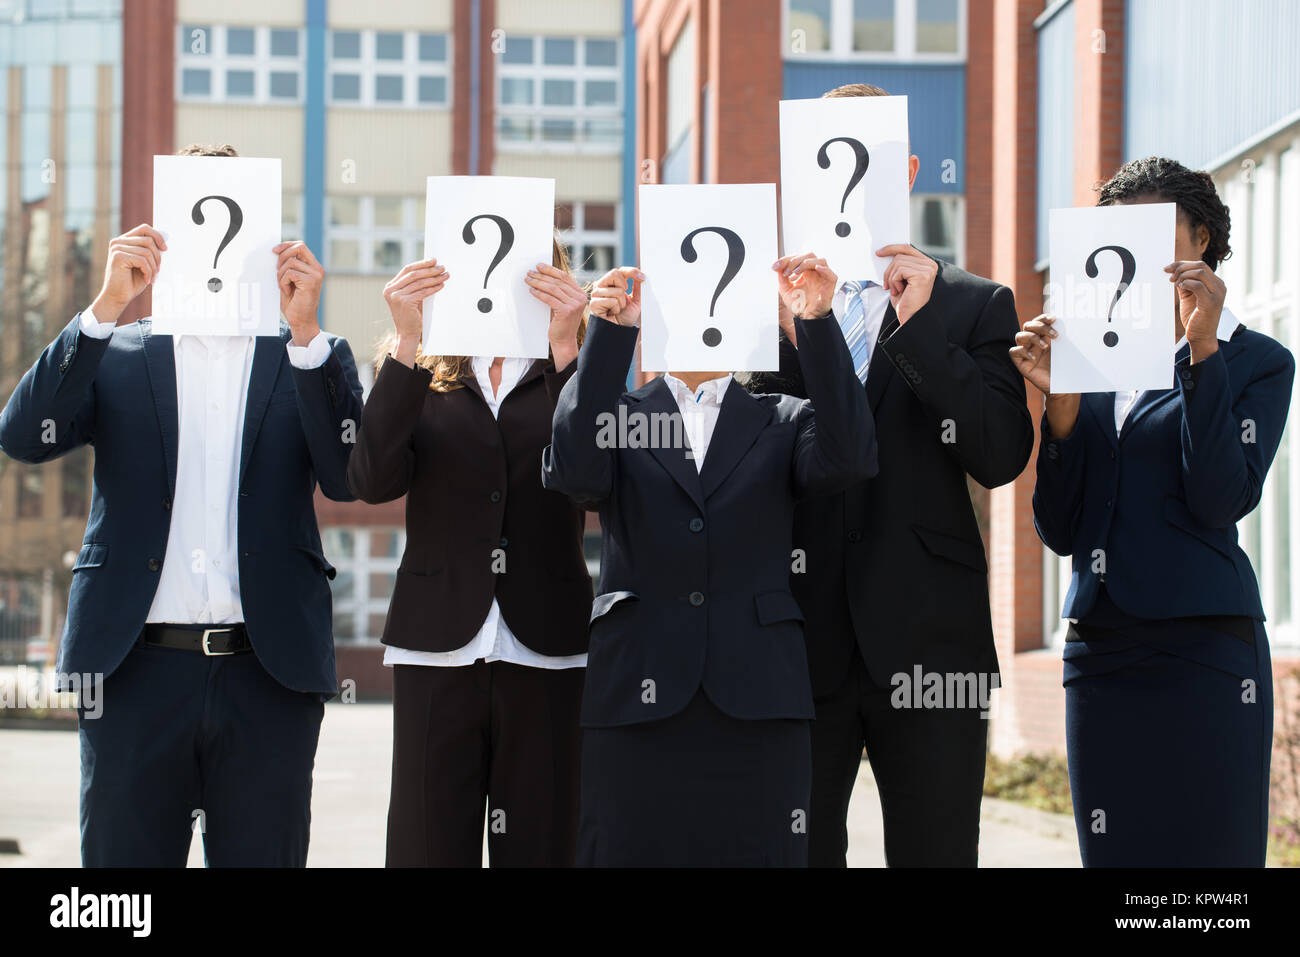 Businesspeople Hiding Face Behind Question Mark Sign - Stock Image